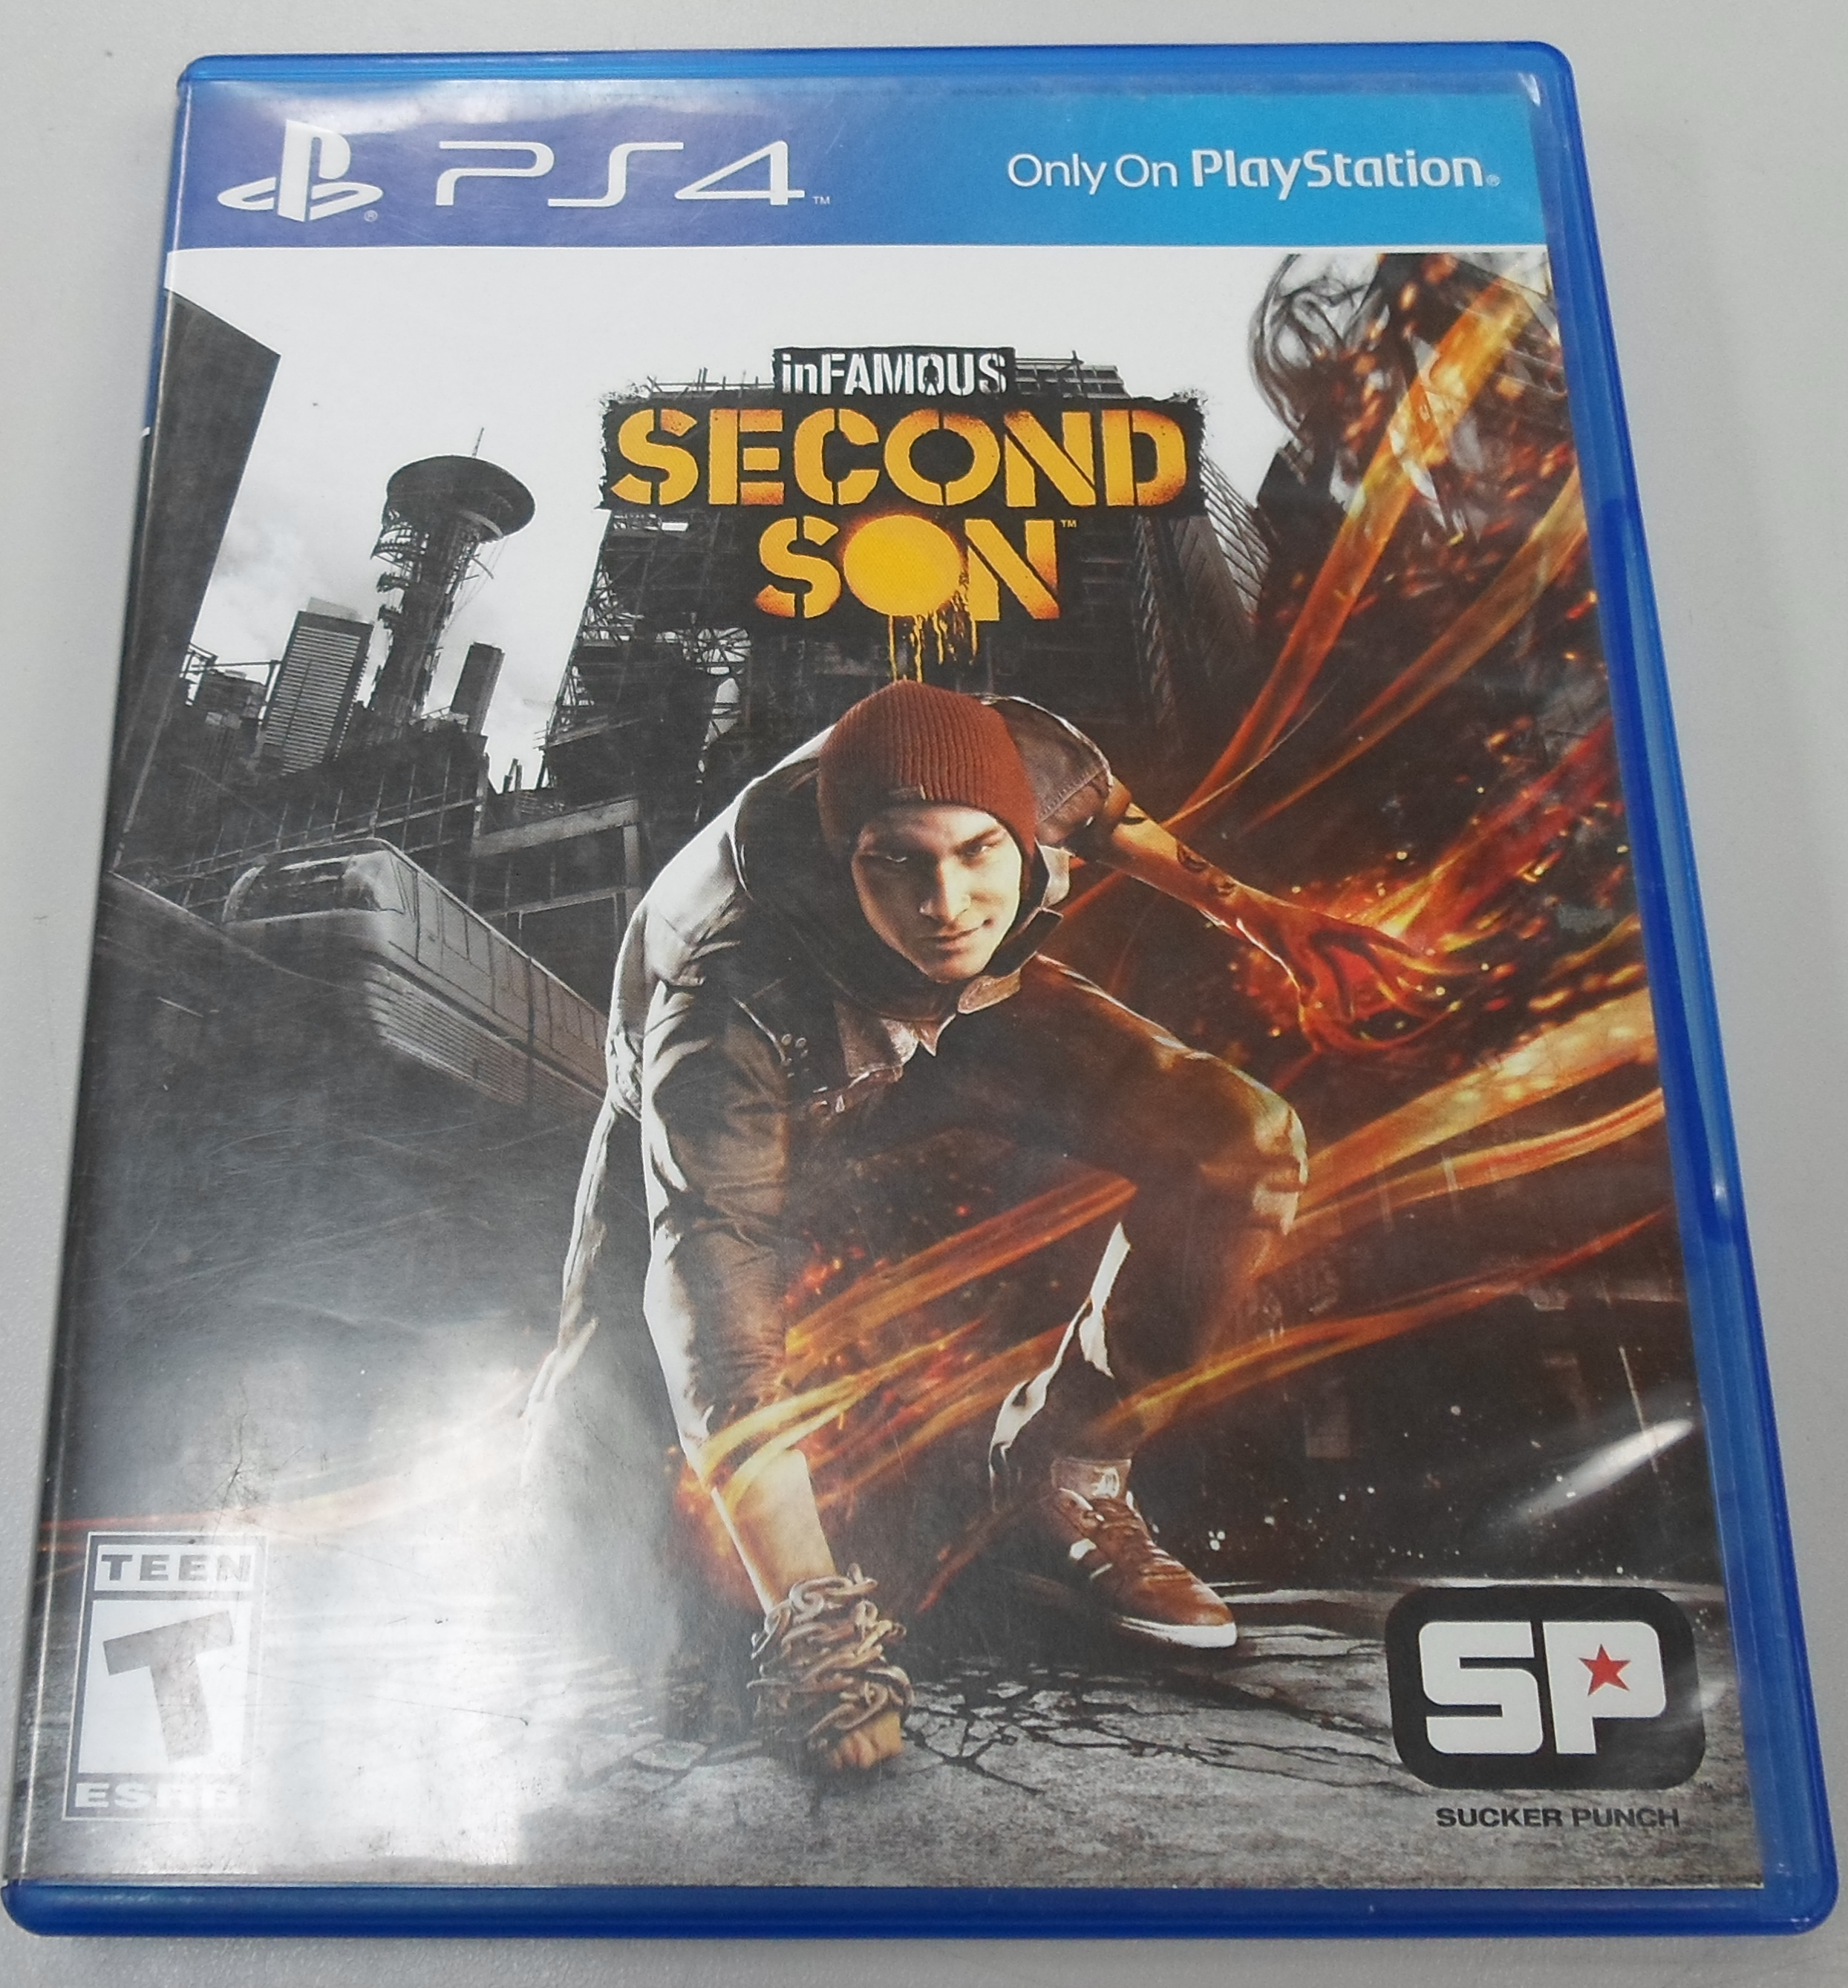 INFAMOUS SECOND SON  - PS 4 GAME